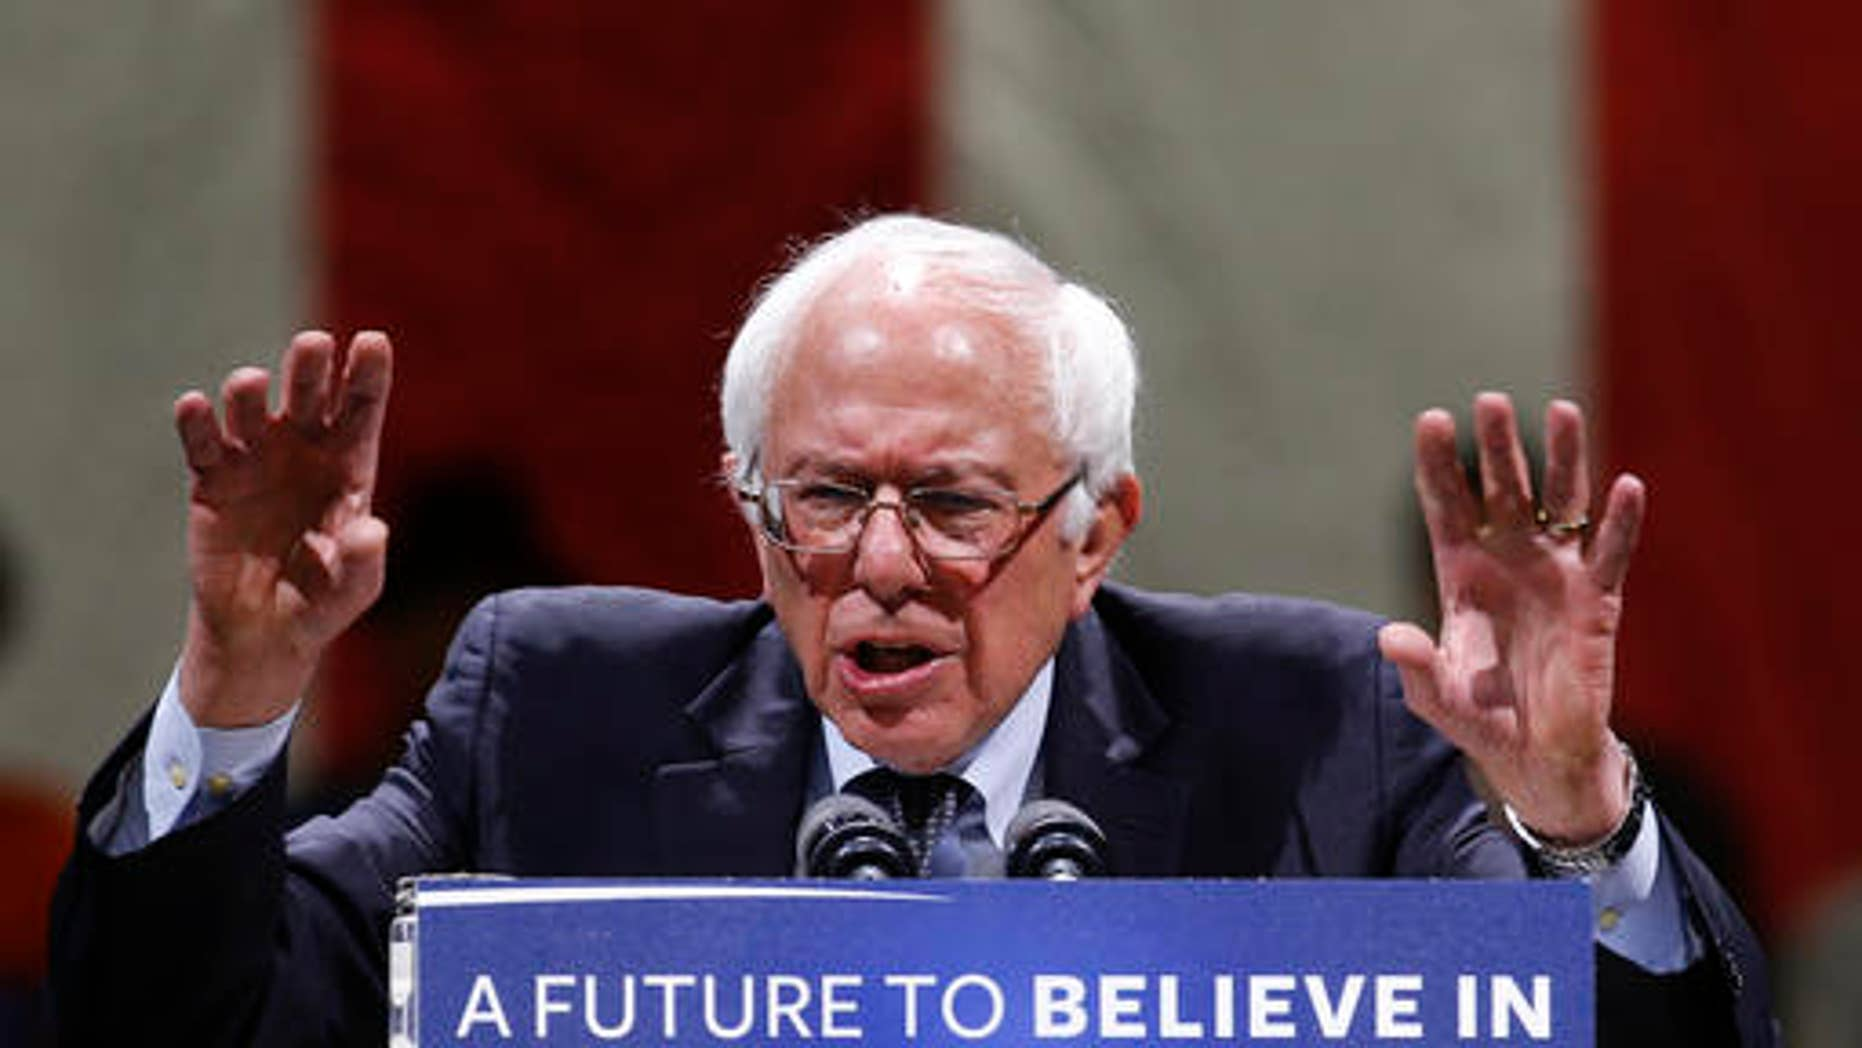 Democratic presidential candidate Sen. Bernie Sanders, I-Vt., speaks during a campaign event, Sunday, April 3, 2016, in Madison, Wisc. (AP Photo/Paul Sancya)